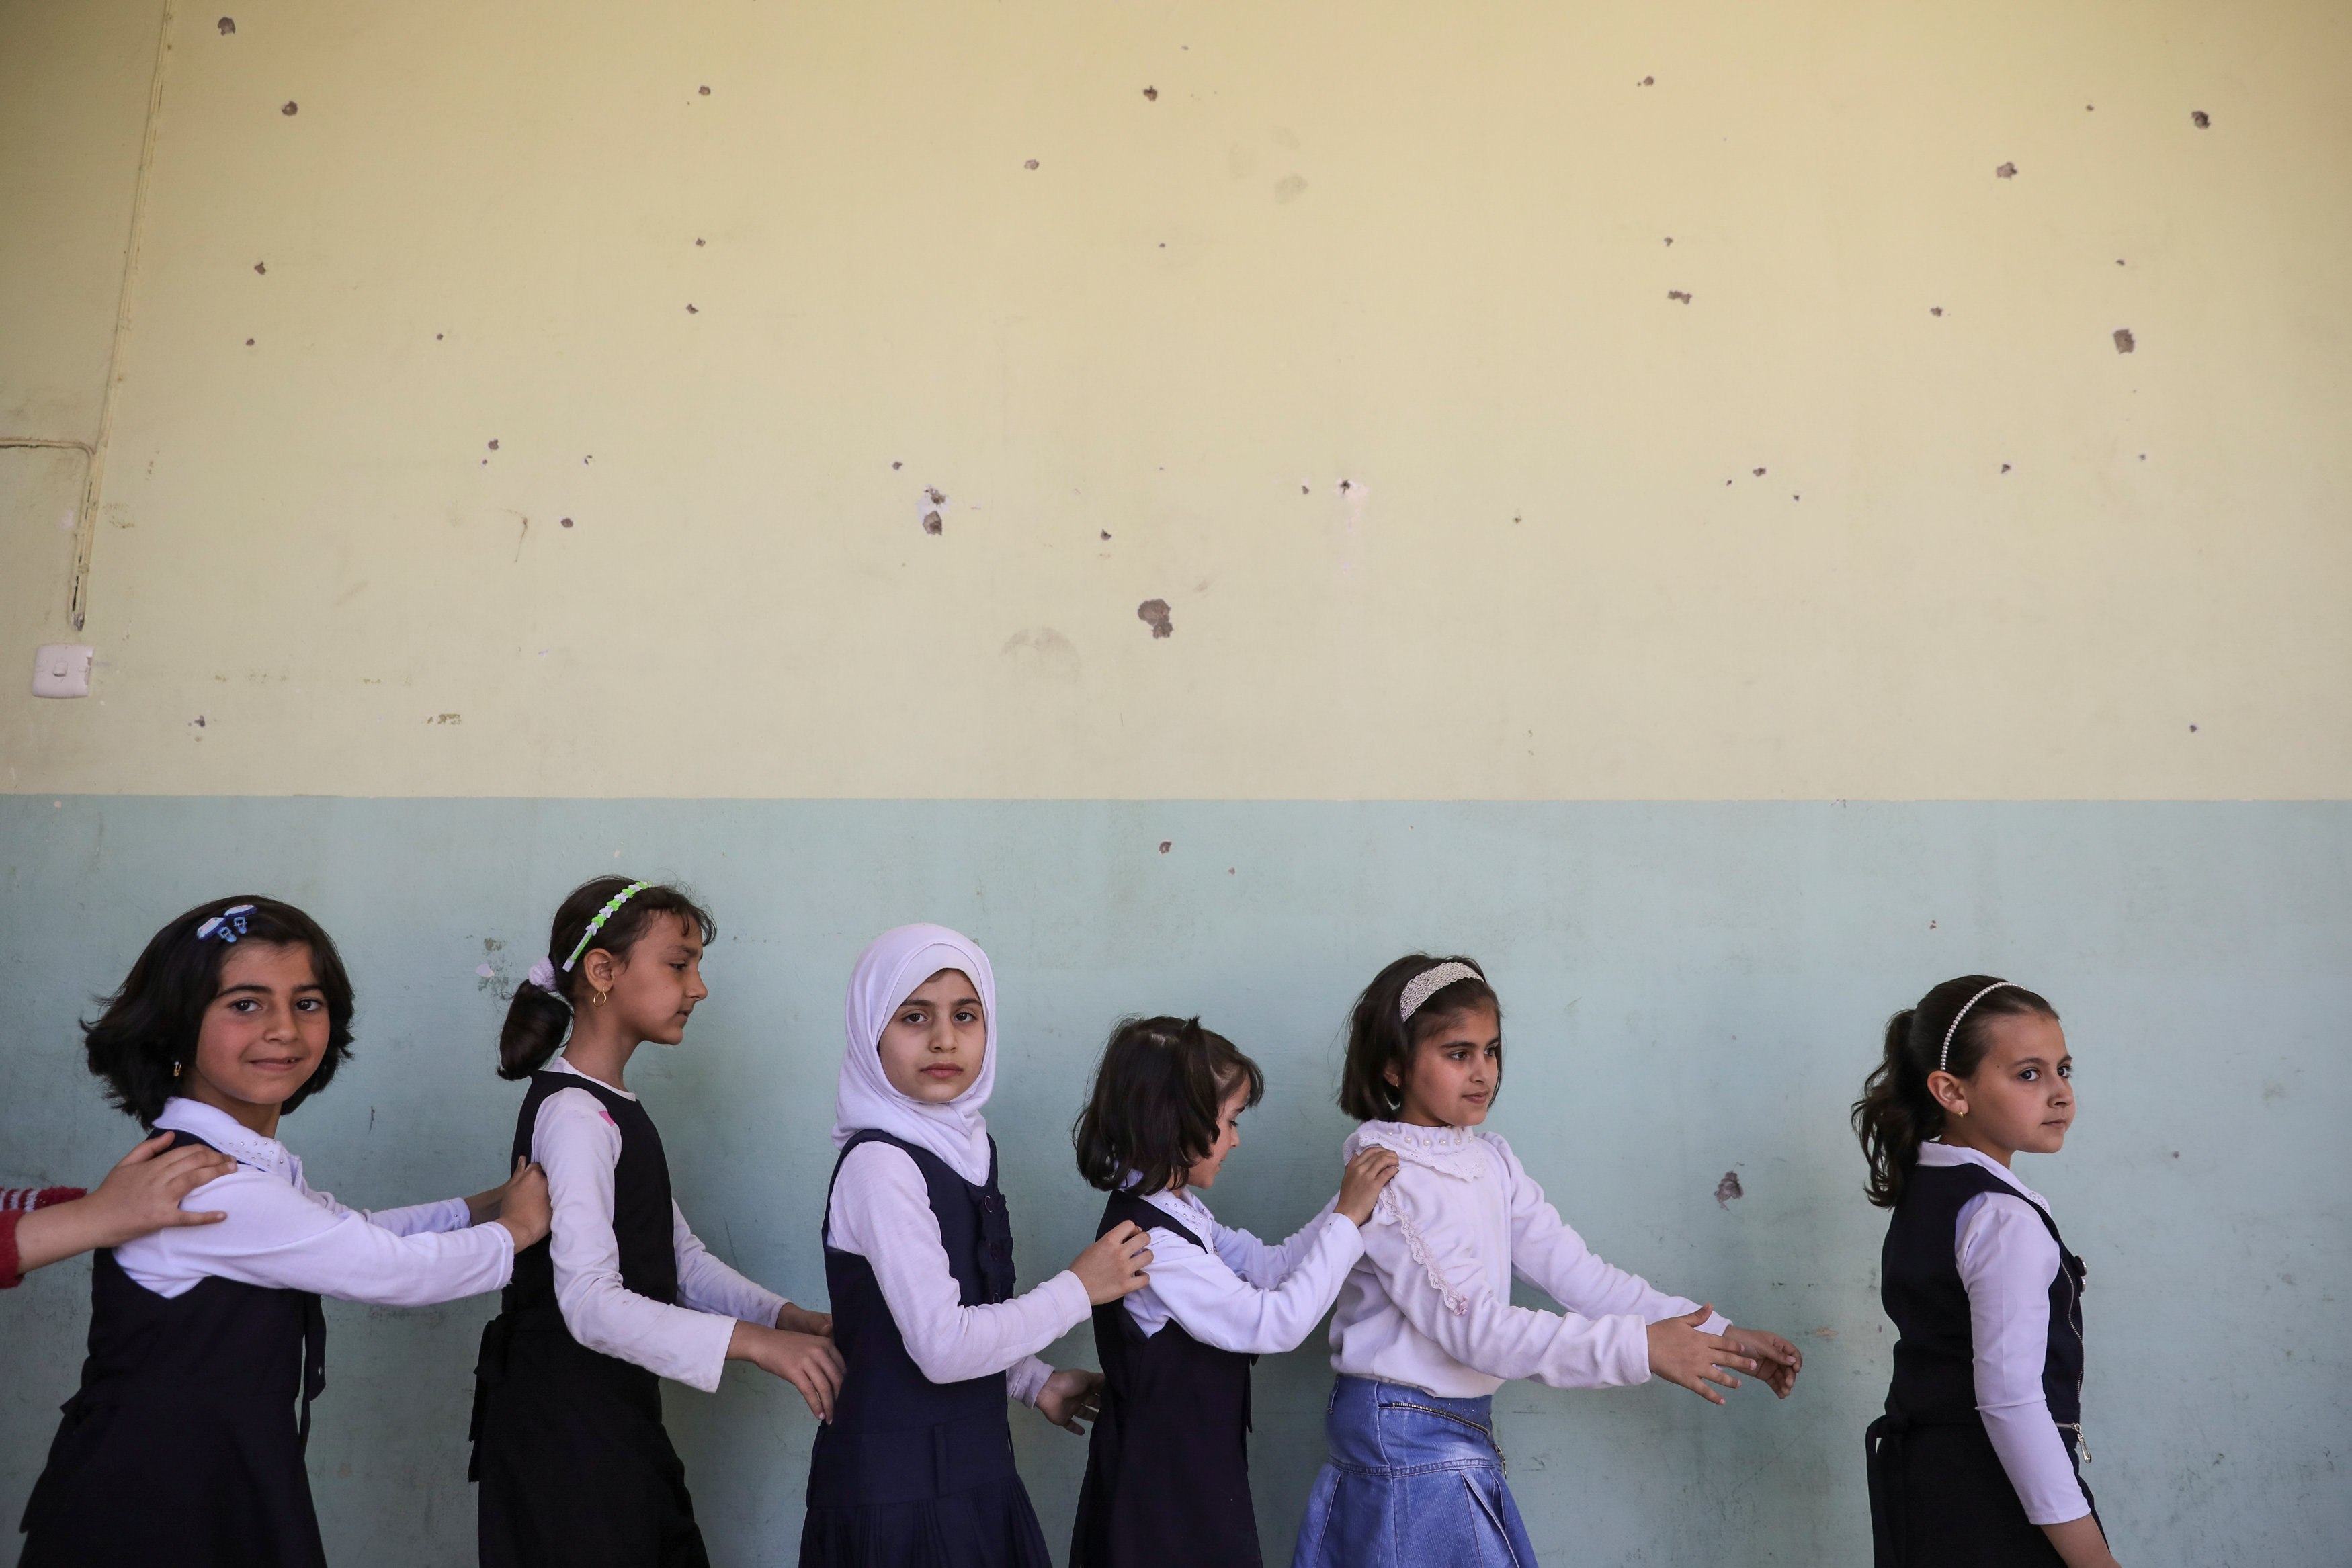 Pupils walk out from their classroom at an elementary school in eastern Mosul, Iraq on April 17, 2017. (REUTERS/Marko Djurica)